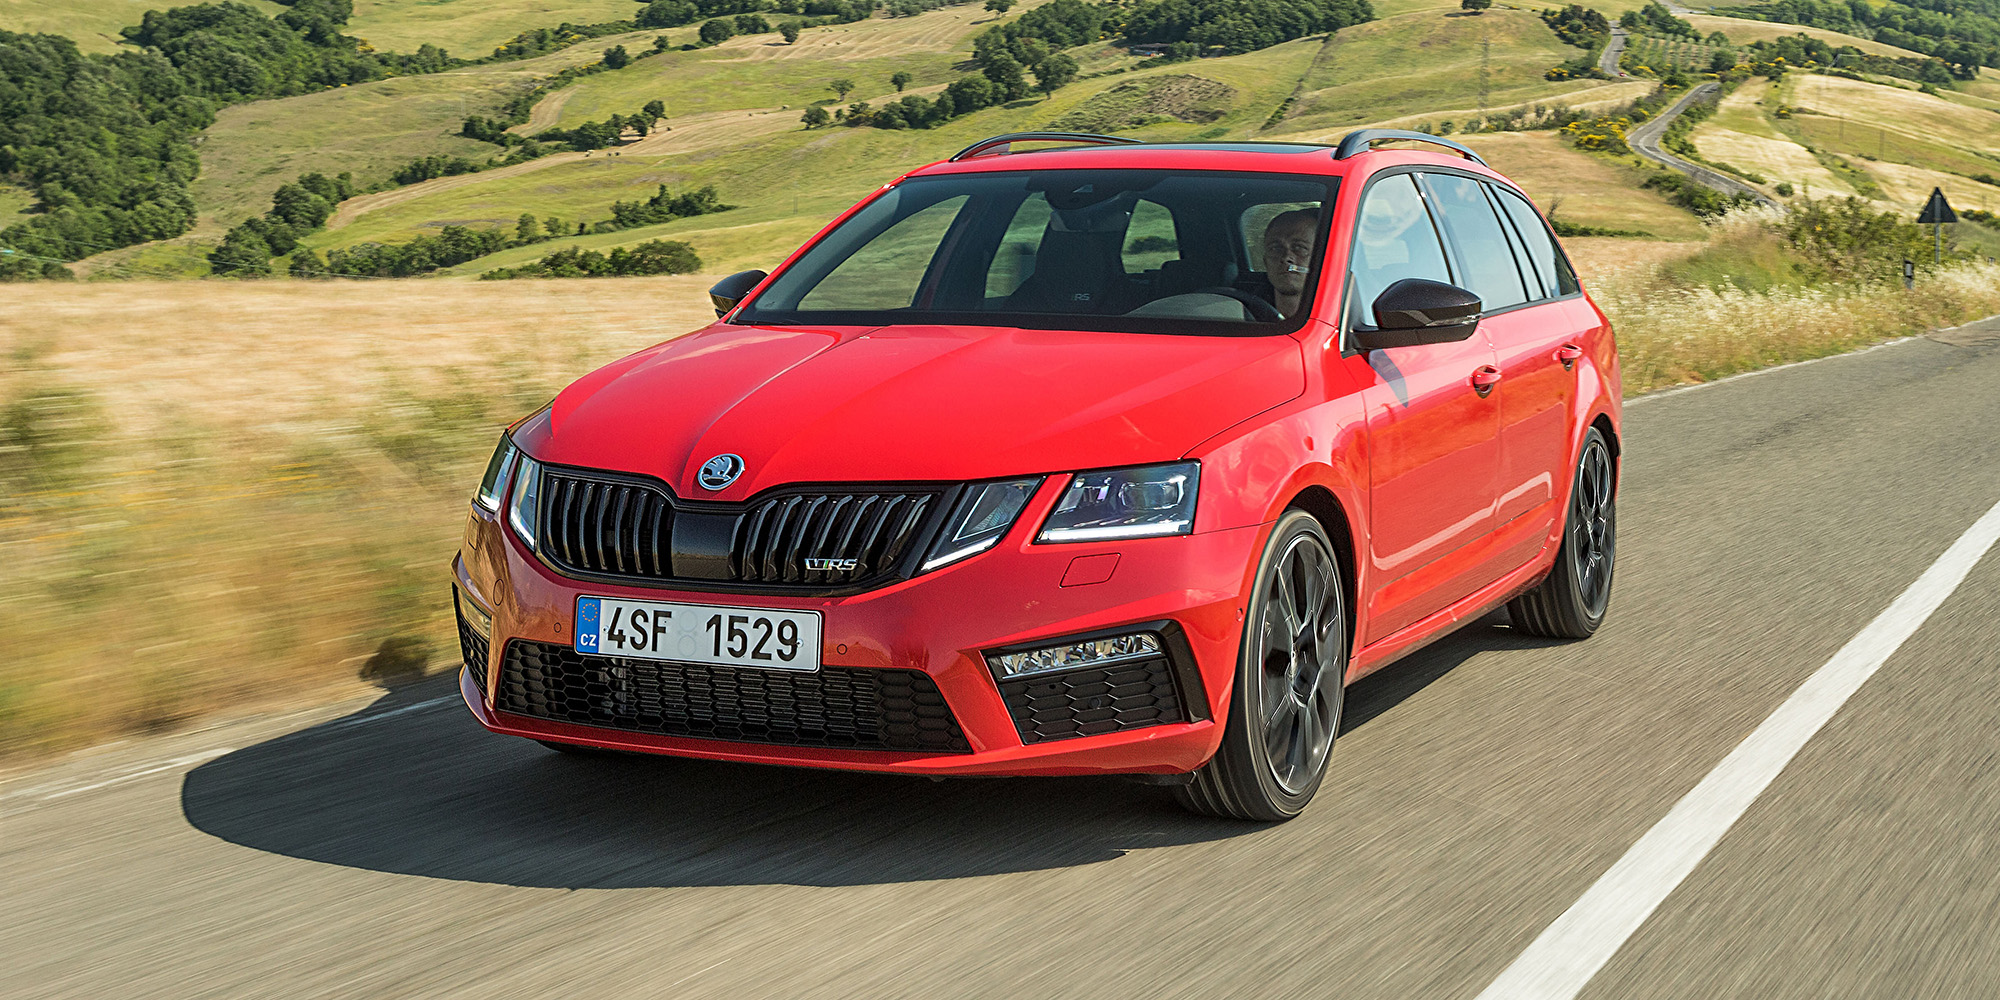 2018 skoda octavia rs245 pricing and specs photos 1 of 12. Black Bedroom Furniture Sets. Home Design Ideas